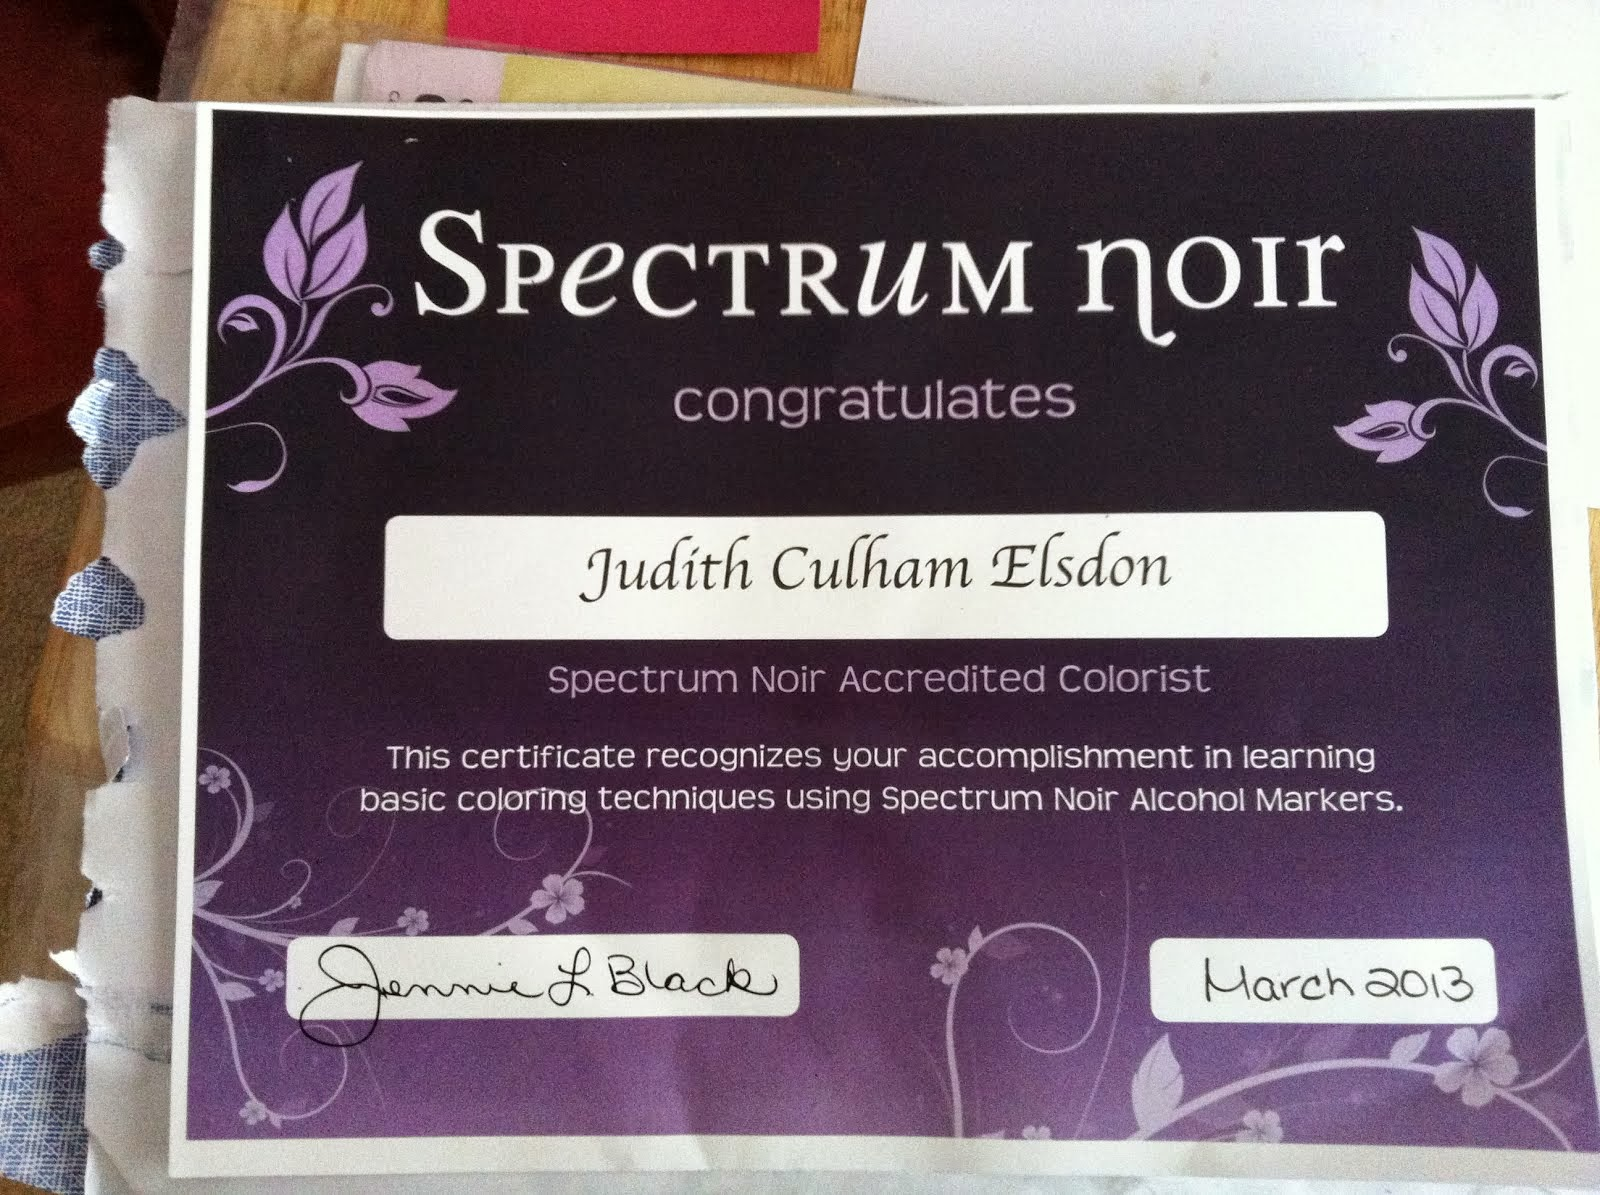 Spectrum Noir Accreditation